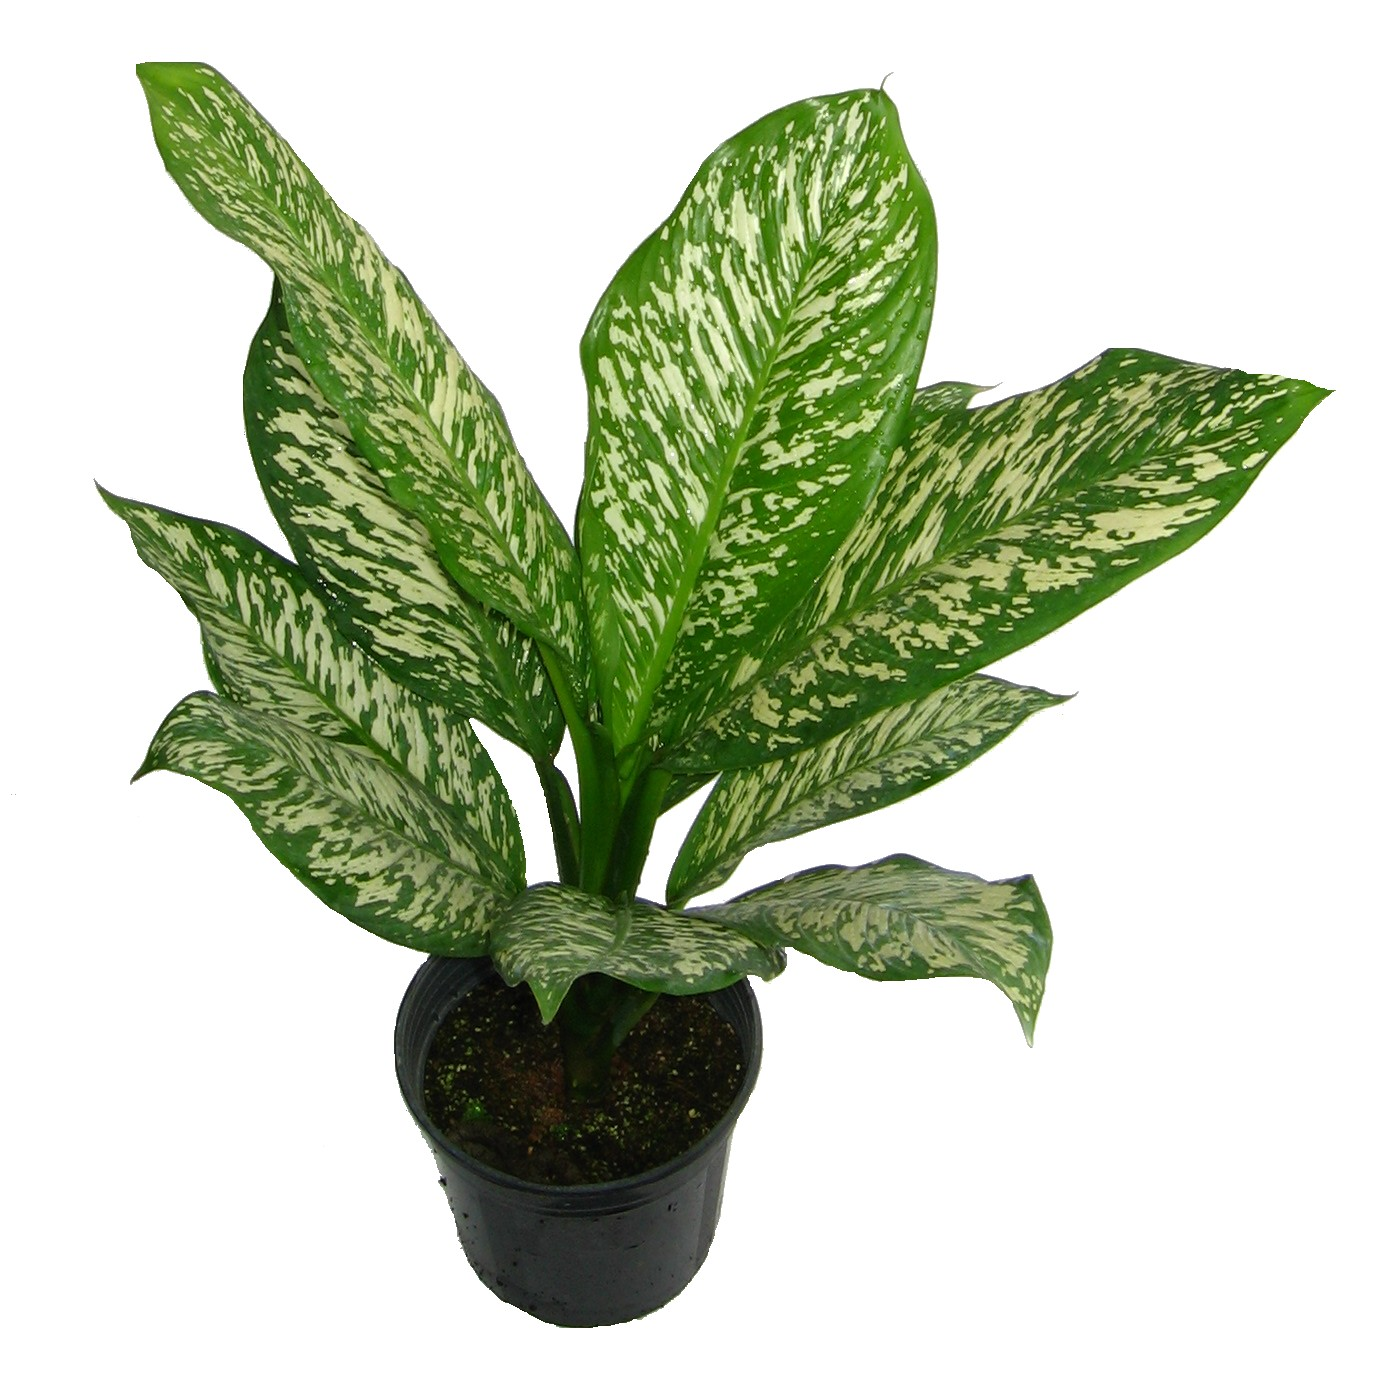 Malaysia Indoor Plants - Wellgrow Horti Trading on st.lucia plants, persia plants, china's plants, sub saharan africa plants, hiroshima plants, montenegro plants, polynesia plants, australia northern territory plants, medically important plants, arabian peninsula plants, liechtenstein plants, middle colonies plants, himalayan region plants, britain plants, pohnpei plants, stacy plants, zambia plants, central china plants, ice land plants, mayotte plants,